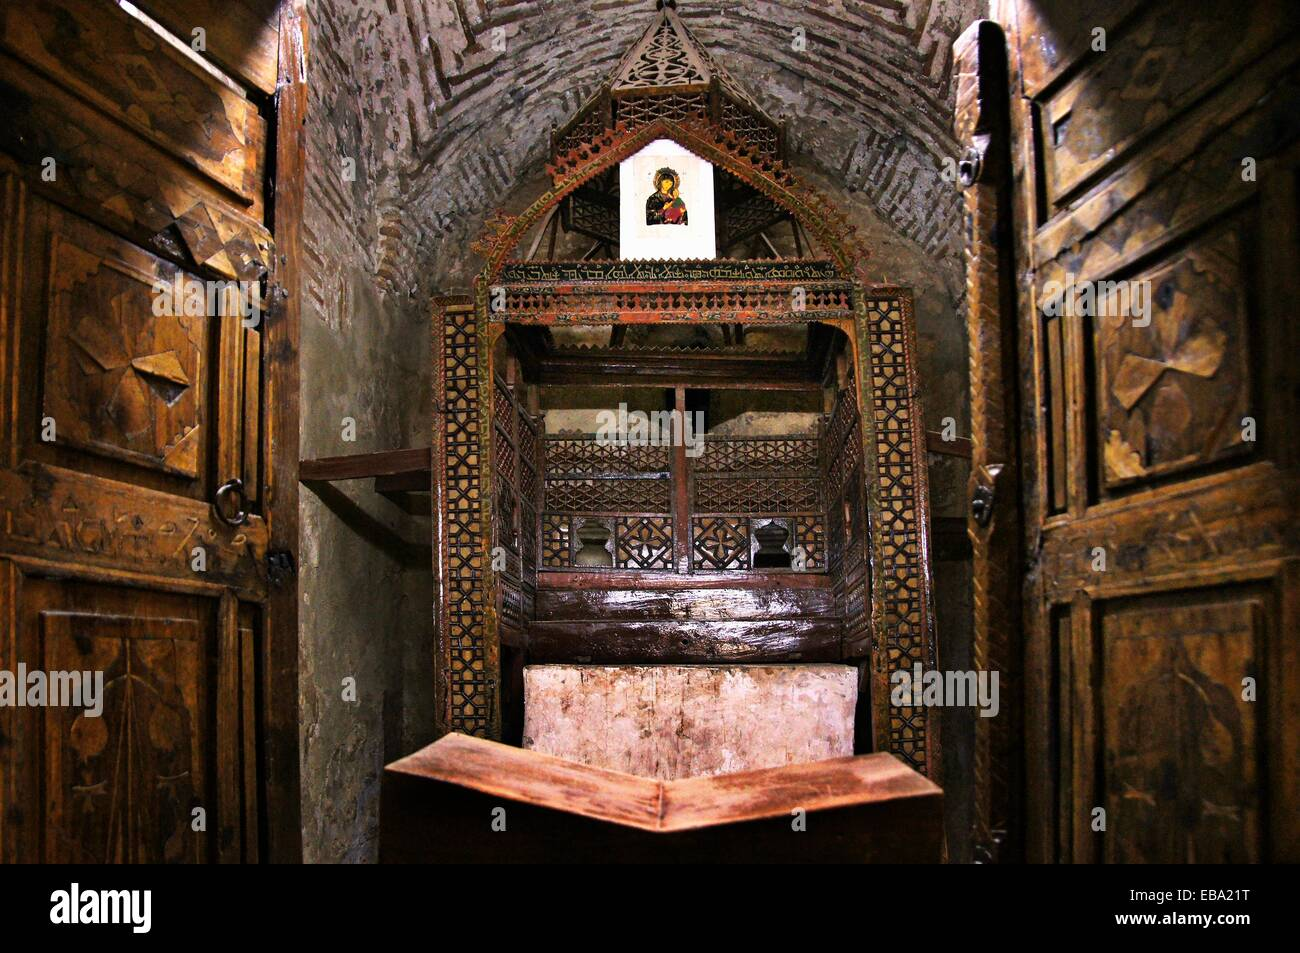 1160 1932 365 493 793 800 abdin acquired ad Ananias architecture area Asia Assyrian better building chair chapel - Stock Image